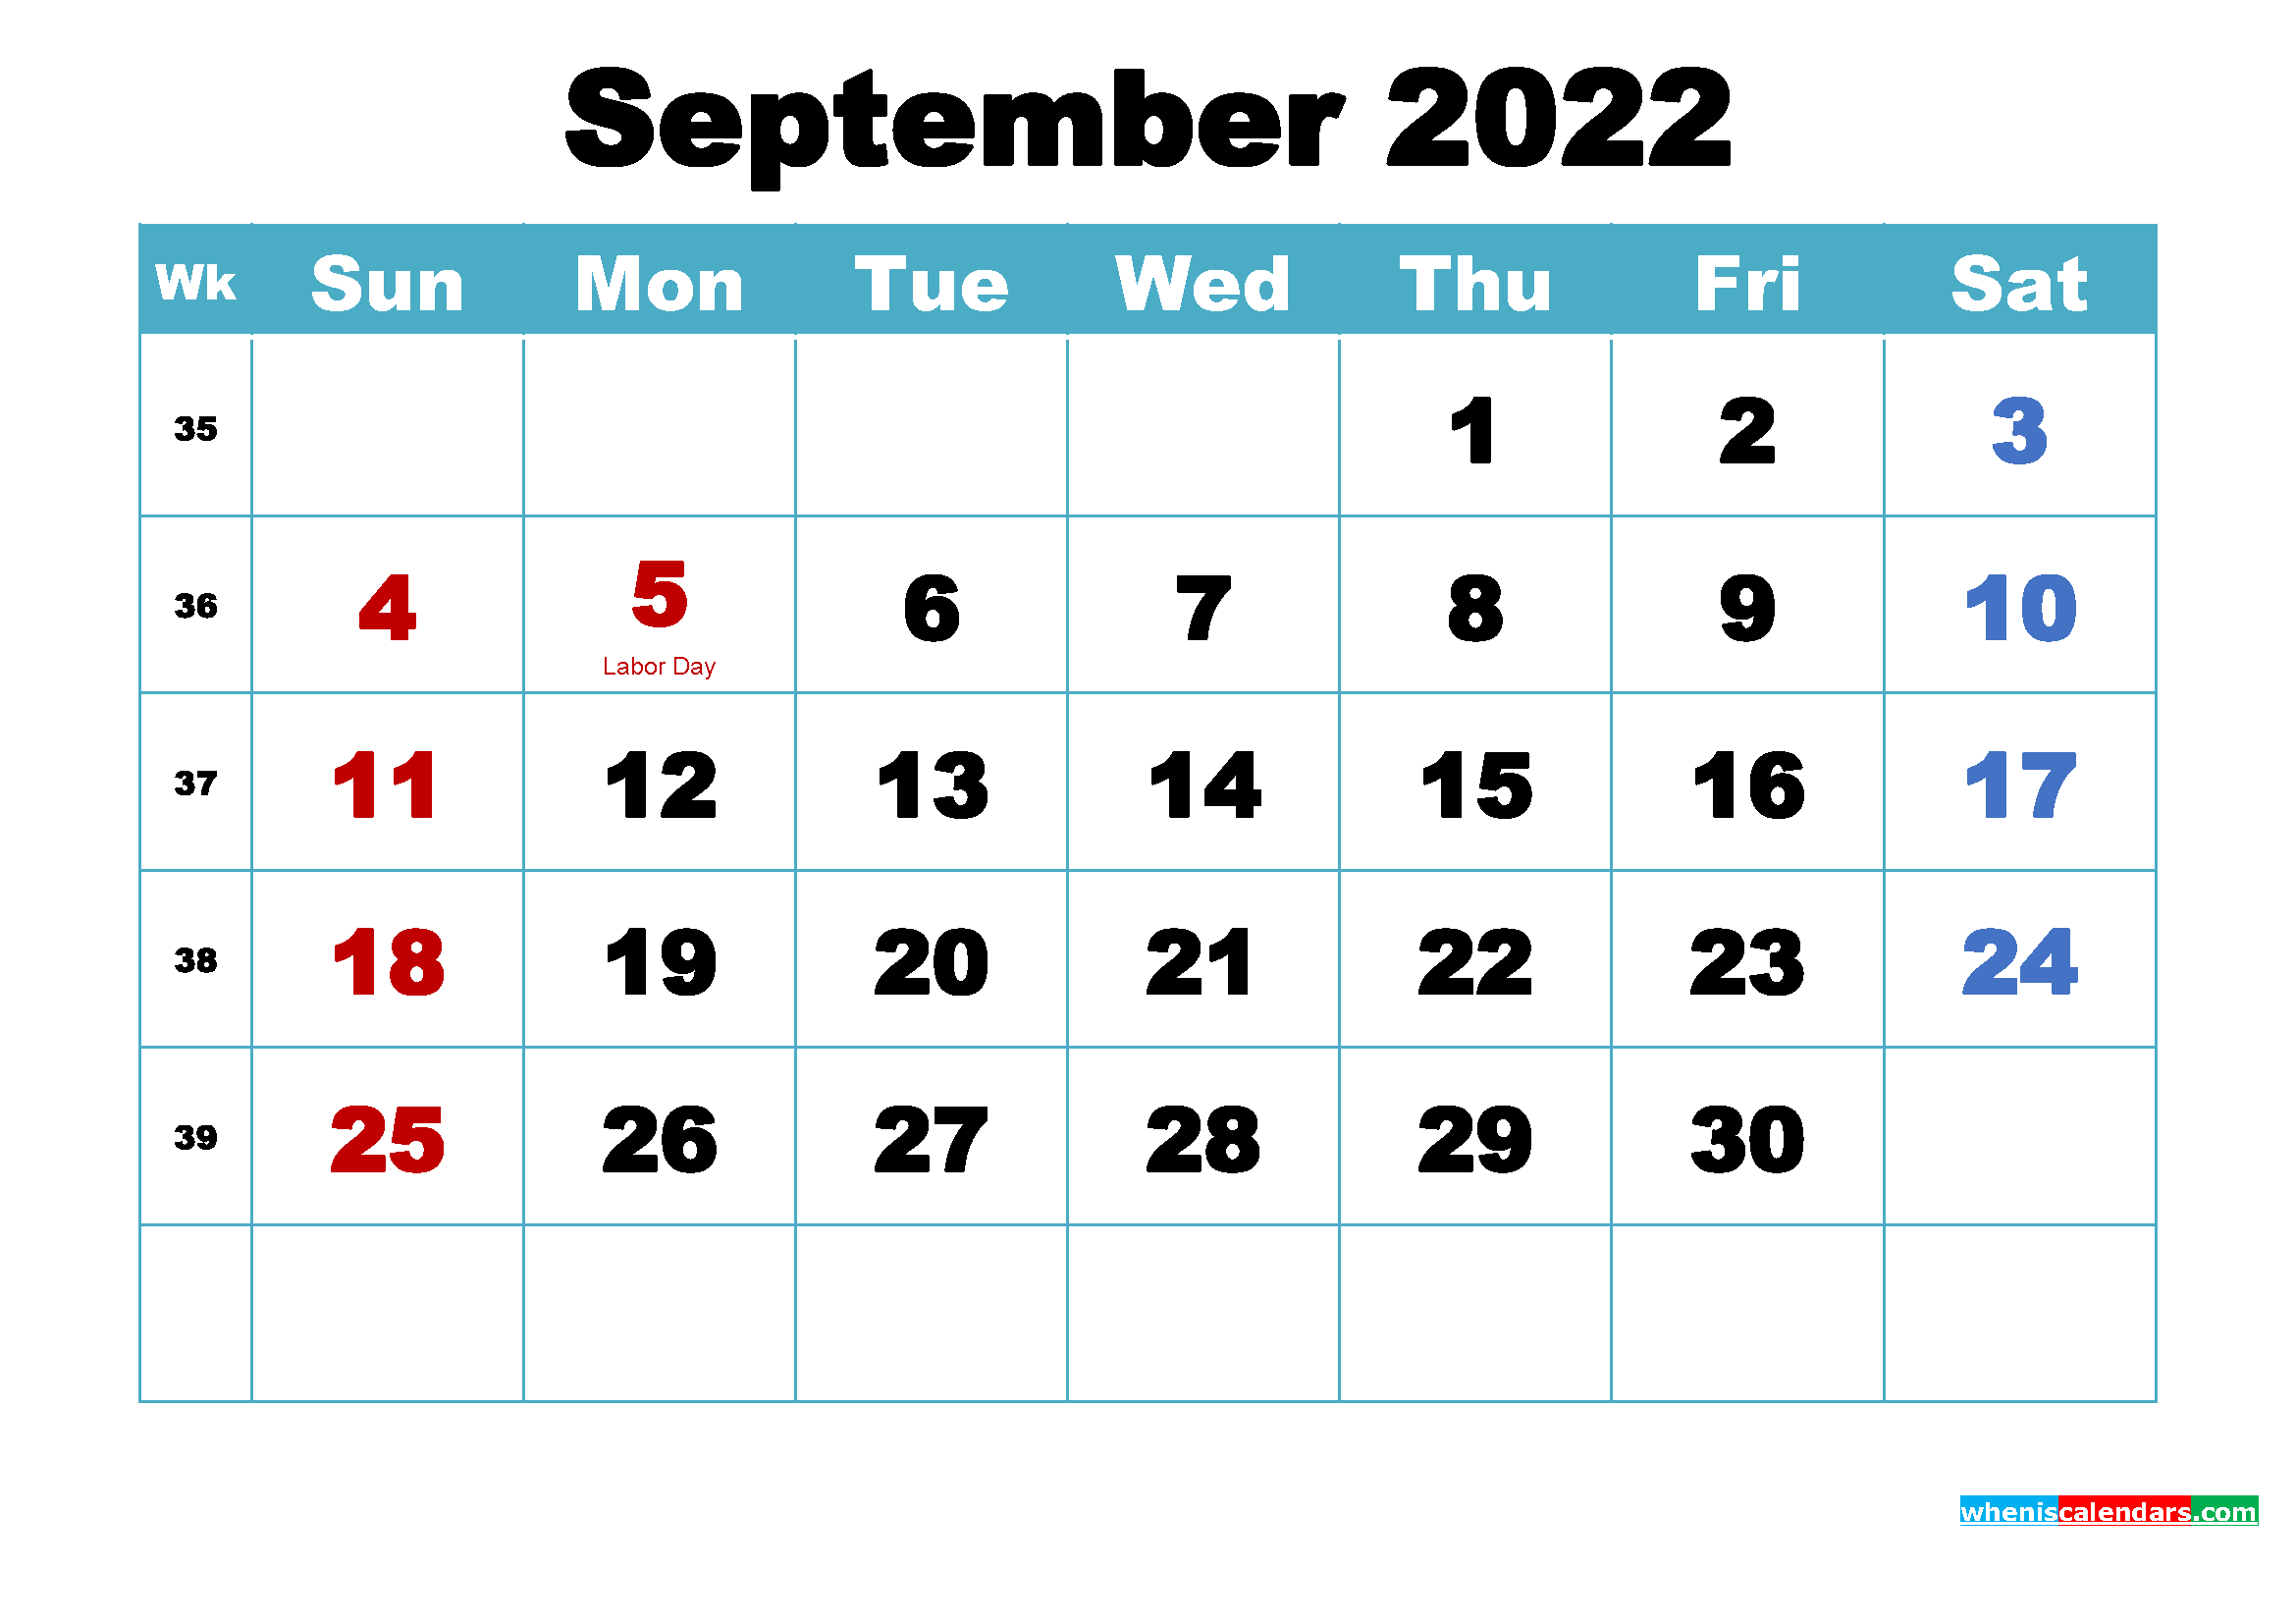 September 2022 Calendar Wallpaper Free Download